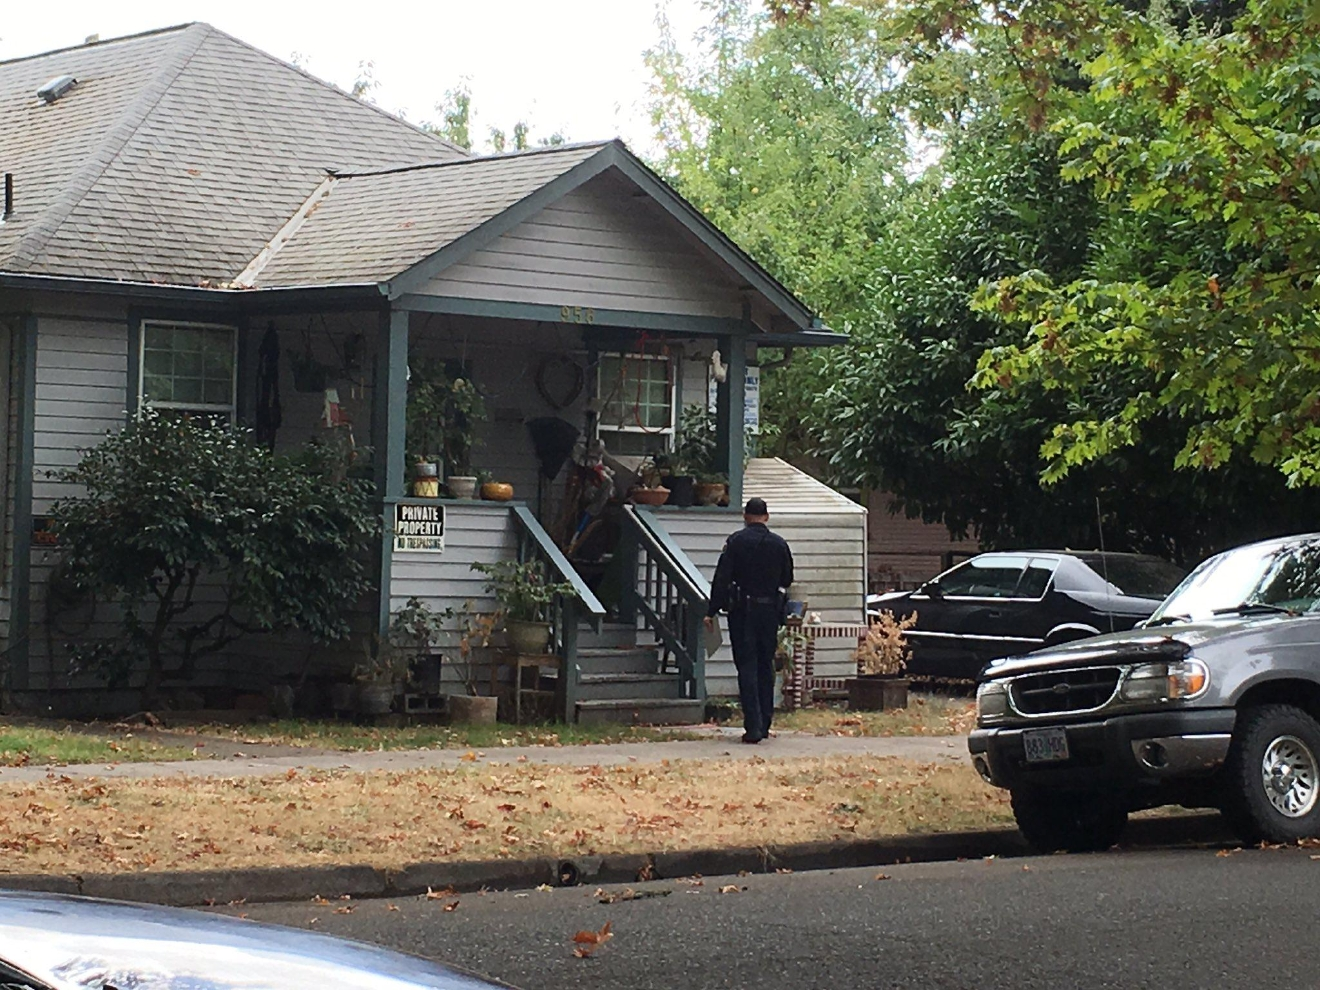 Eugene Police officers went door-to-door searching for any witnesses, photos or videos from the night Anthony Xavier Johnson was killed in the Whiteaker neighborhood. (SBG photo)